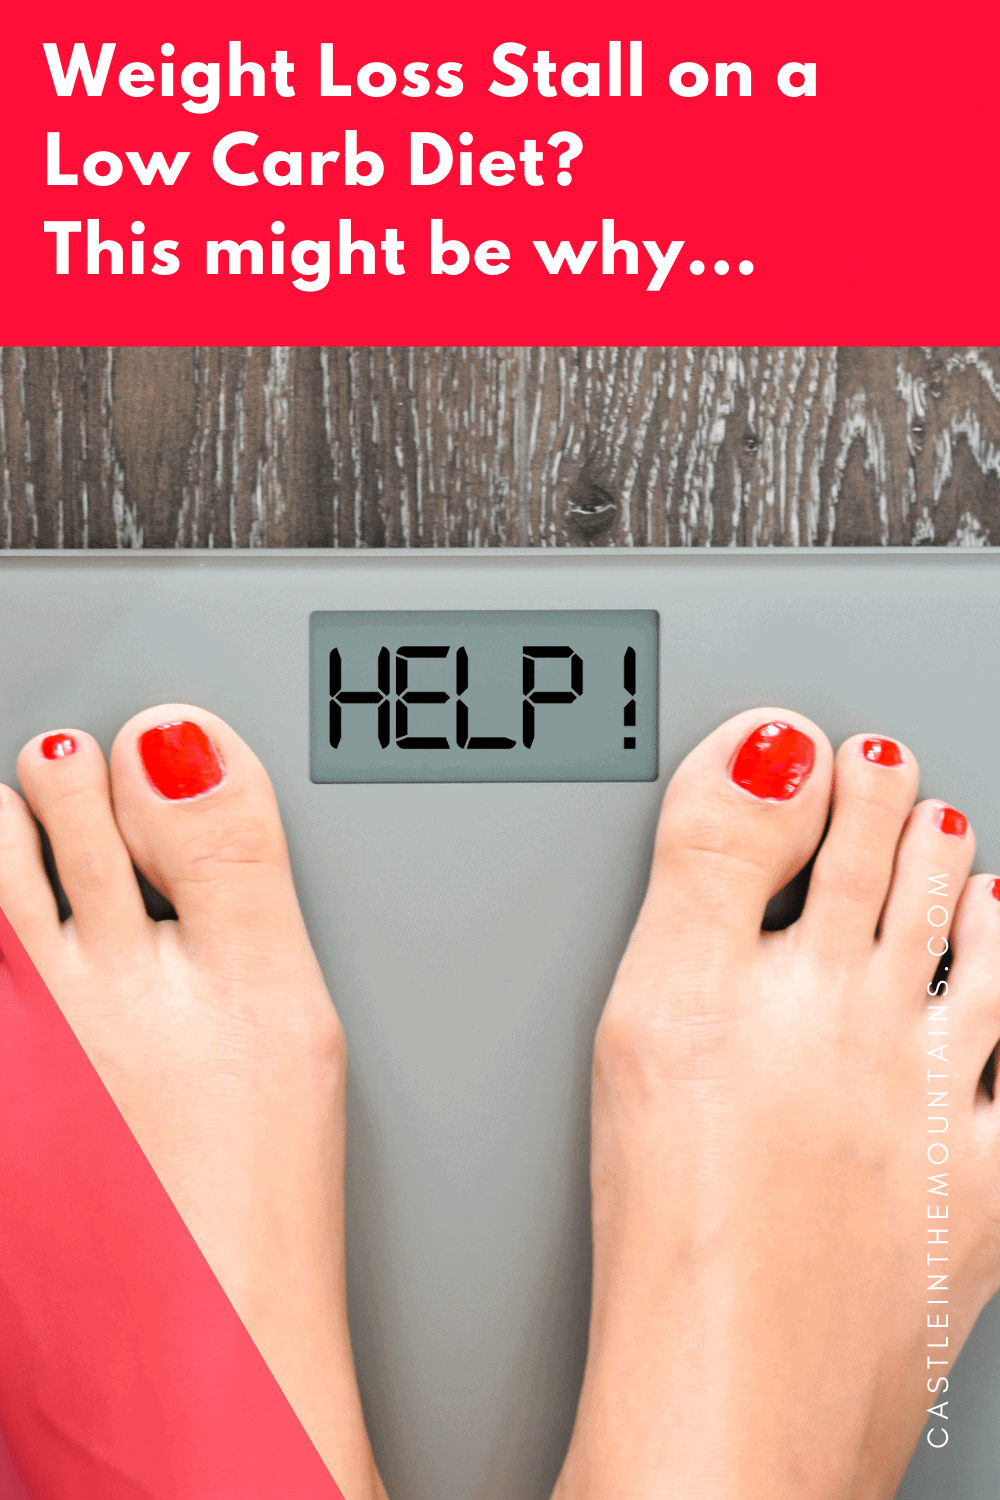 Menopause and Low Carb Diets - The one thing that might be missing...